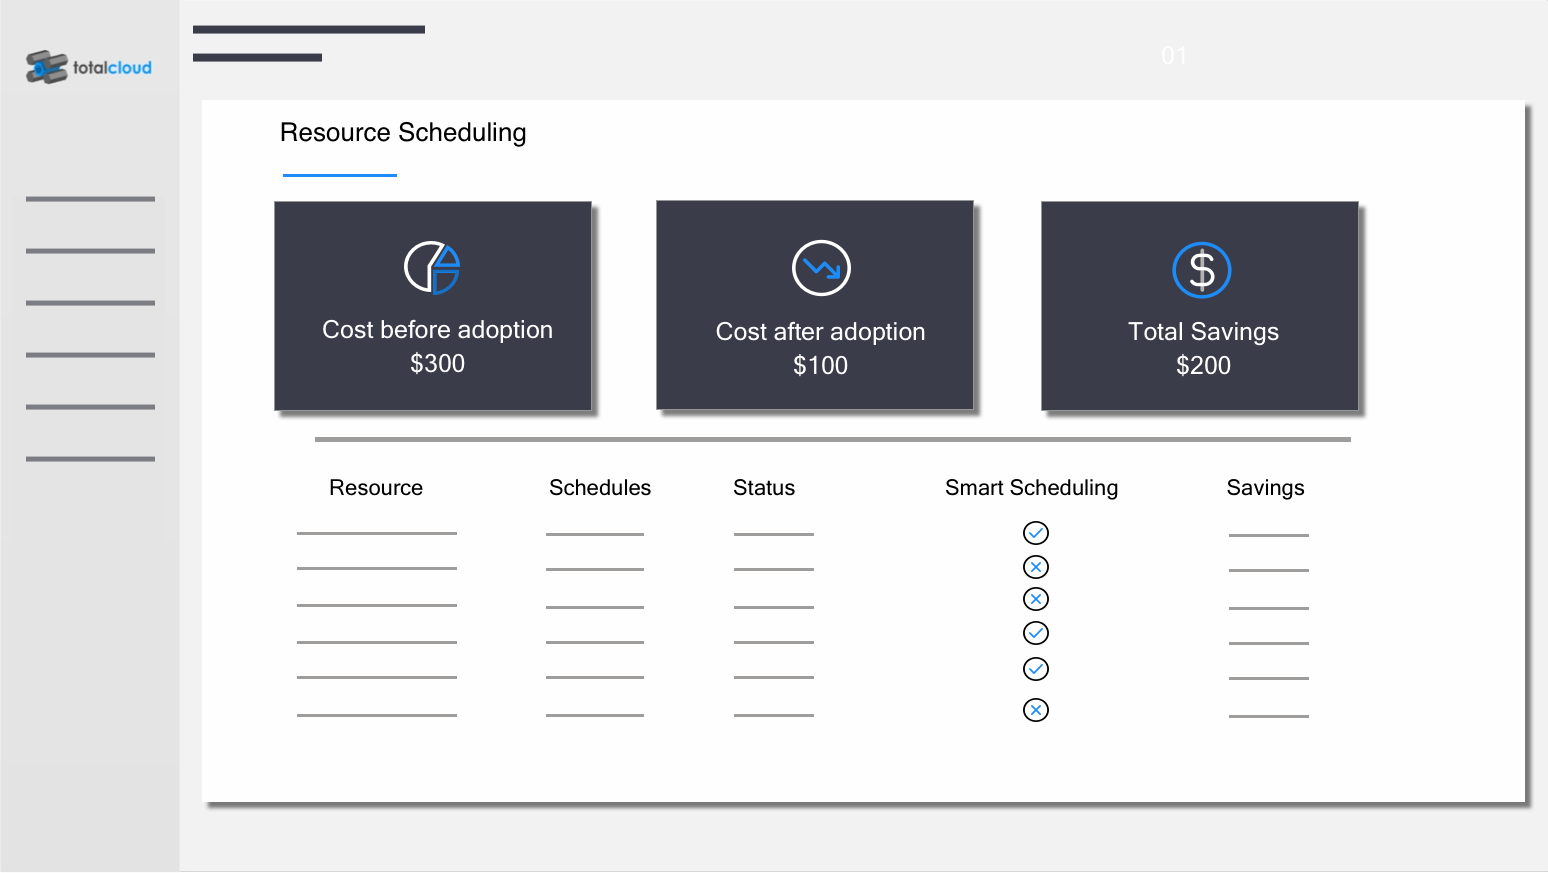 Cloud cost reduction with Resource Scheduling